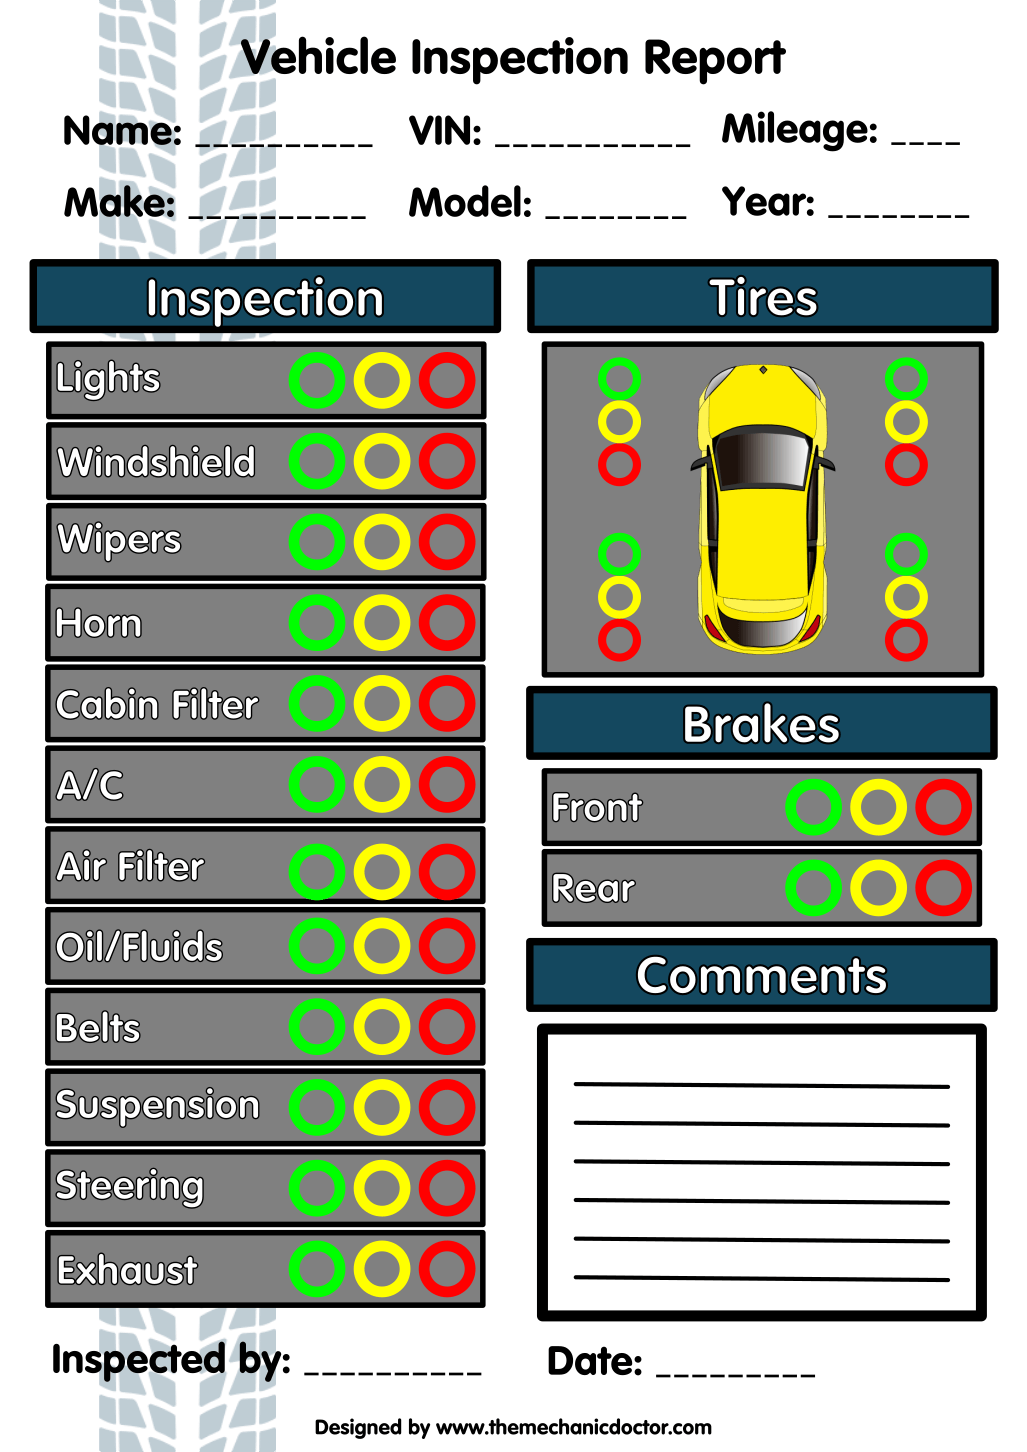 Quick Inspection Report Form  Auto Mechanic Resources